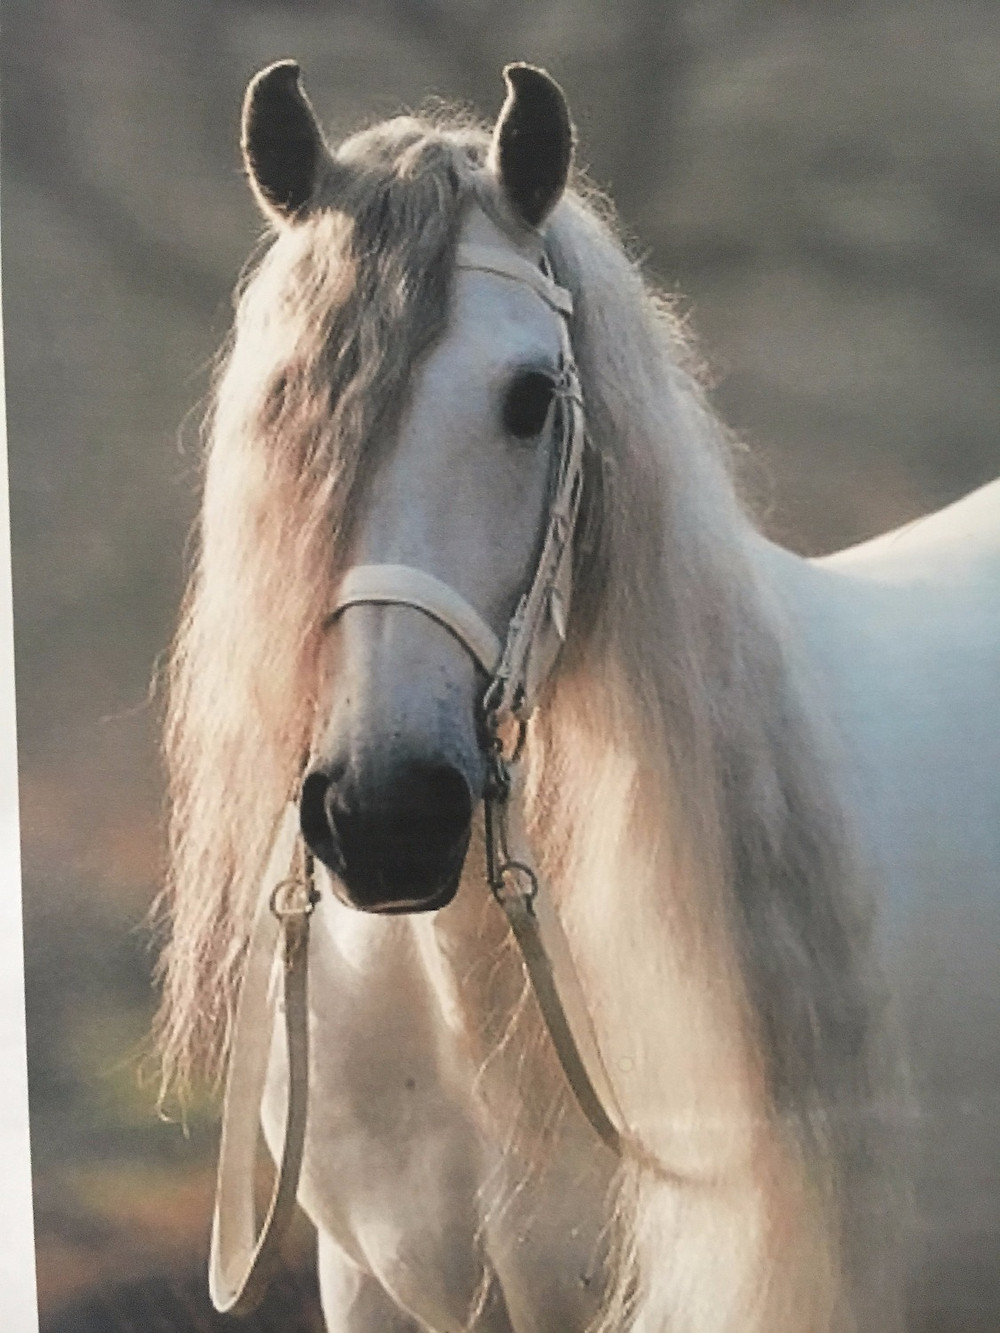 Photo of horse from internet.